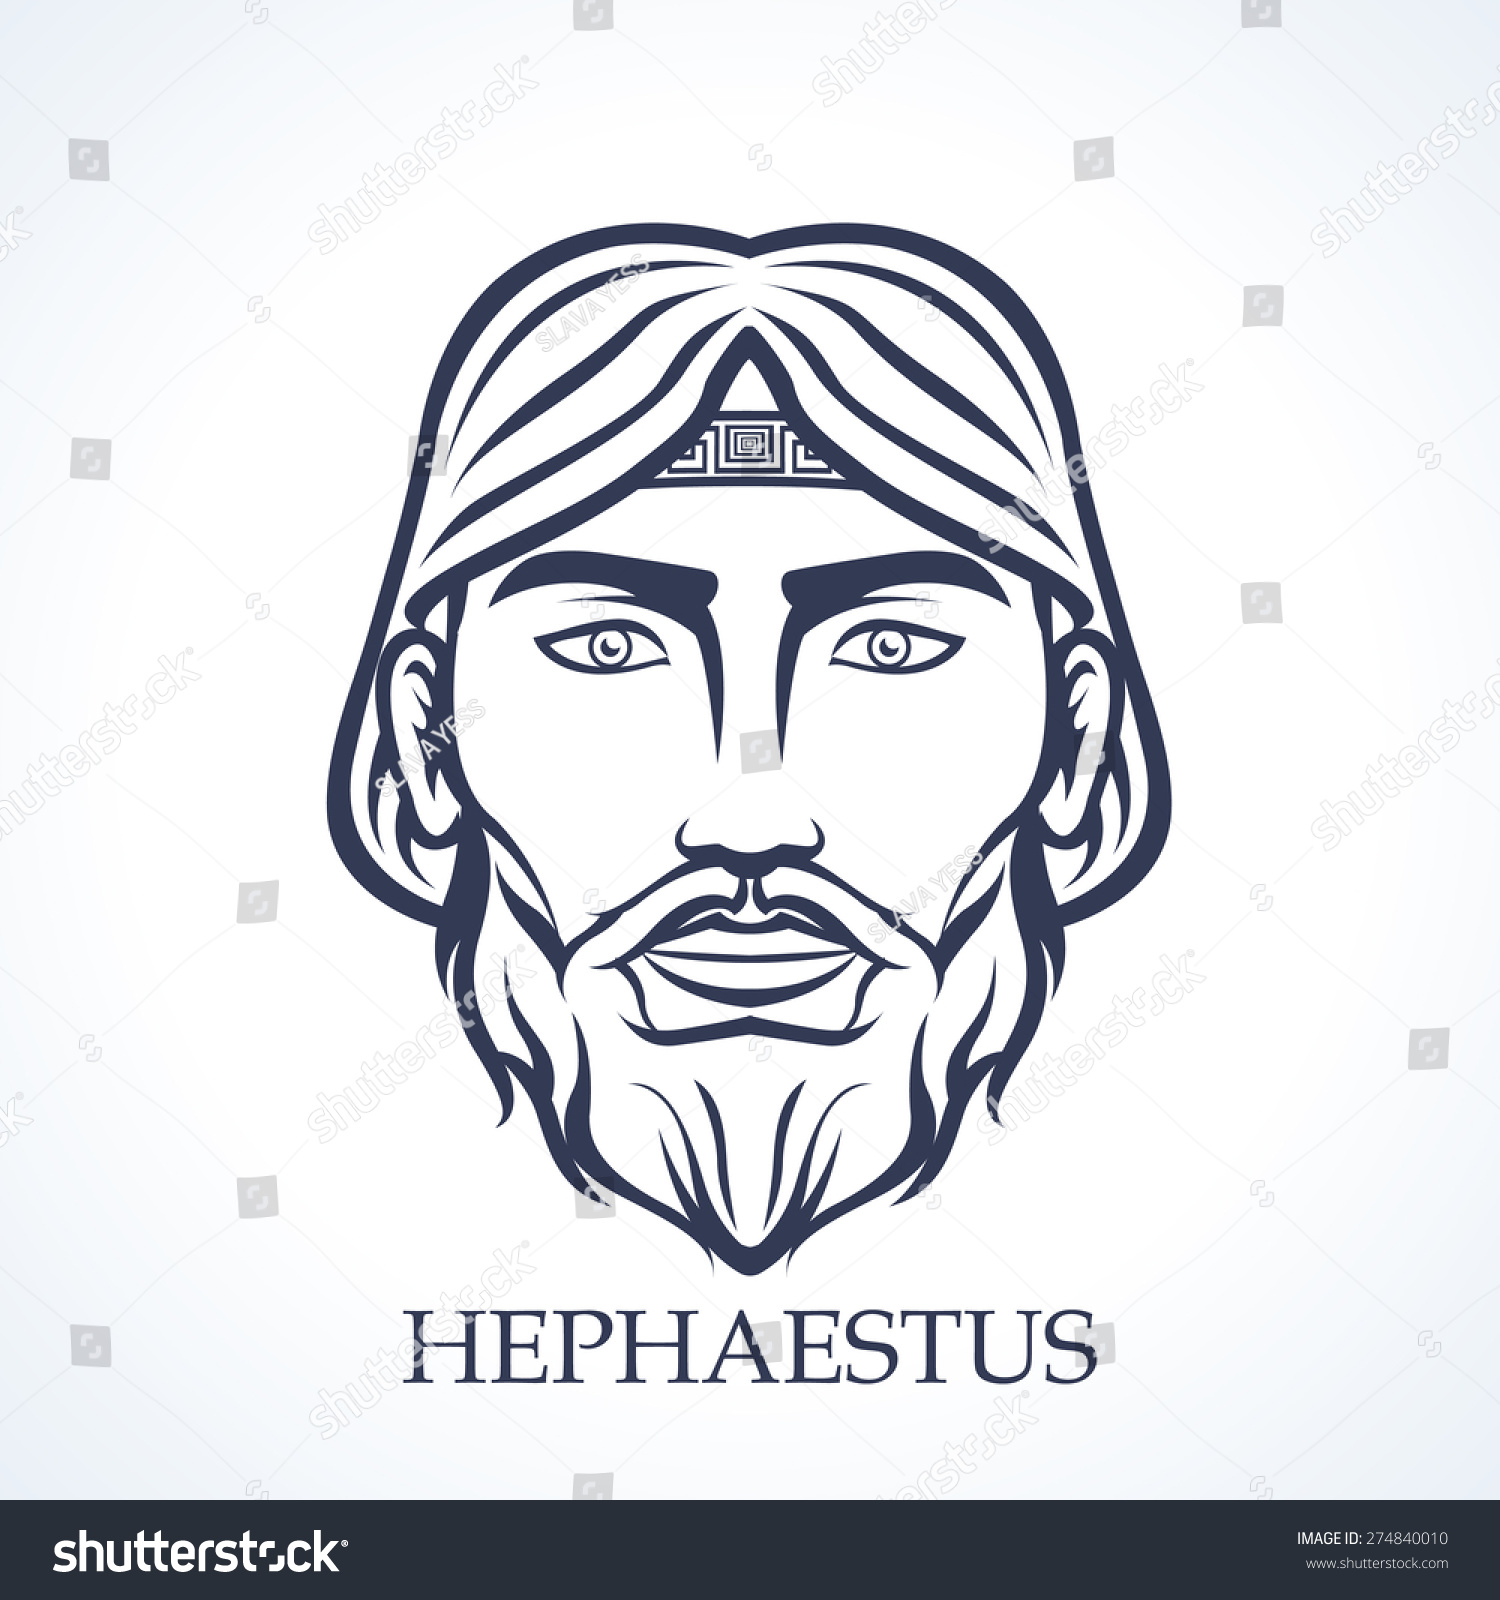 Hephaestus Ancient Greek God Fire Crafts Stock Vector Royalty Free